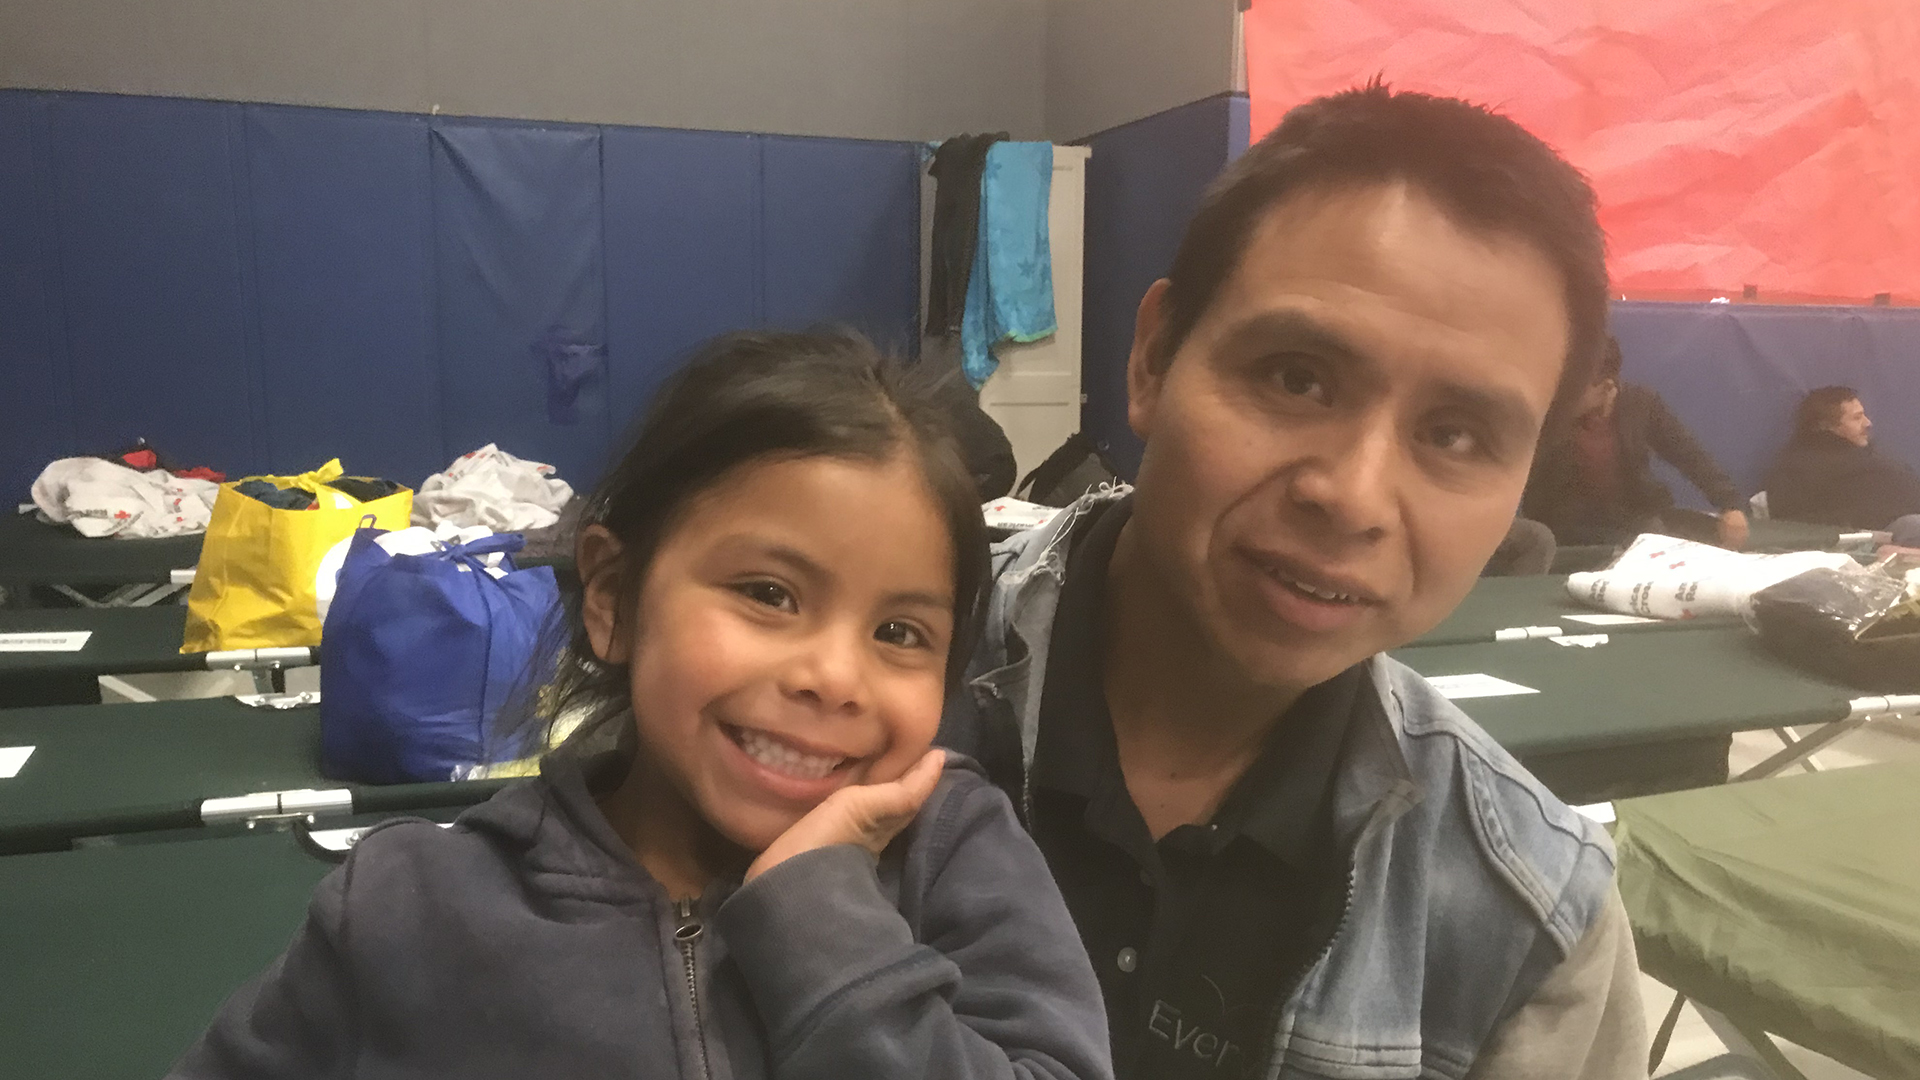 Guatemalan father with his 5 year old daughter.  It took father and daughter almost two weeks to get to the Arizona border.  They are asylum seekers staying at a temporary shelter opened by the City of Tucson to relieve the overflow of migrants at Tucson shelters.  (April 18, 2019)